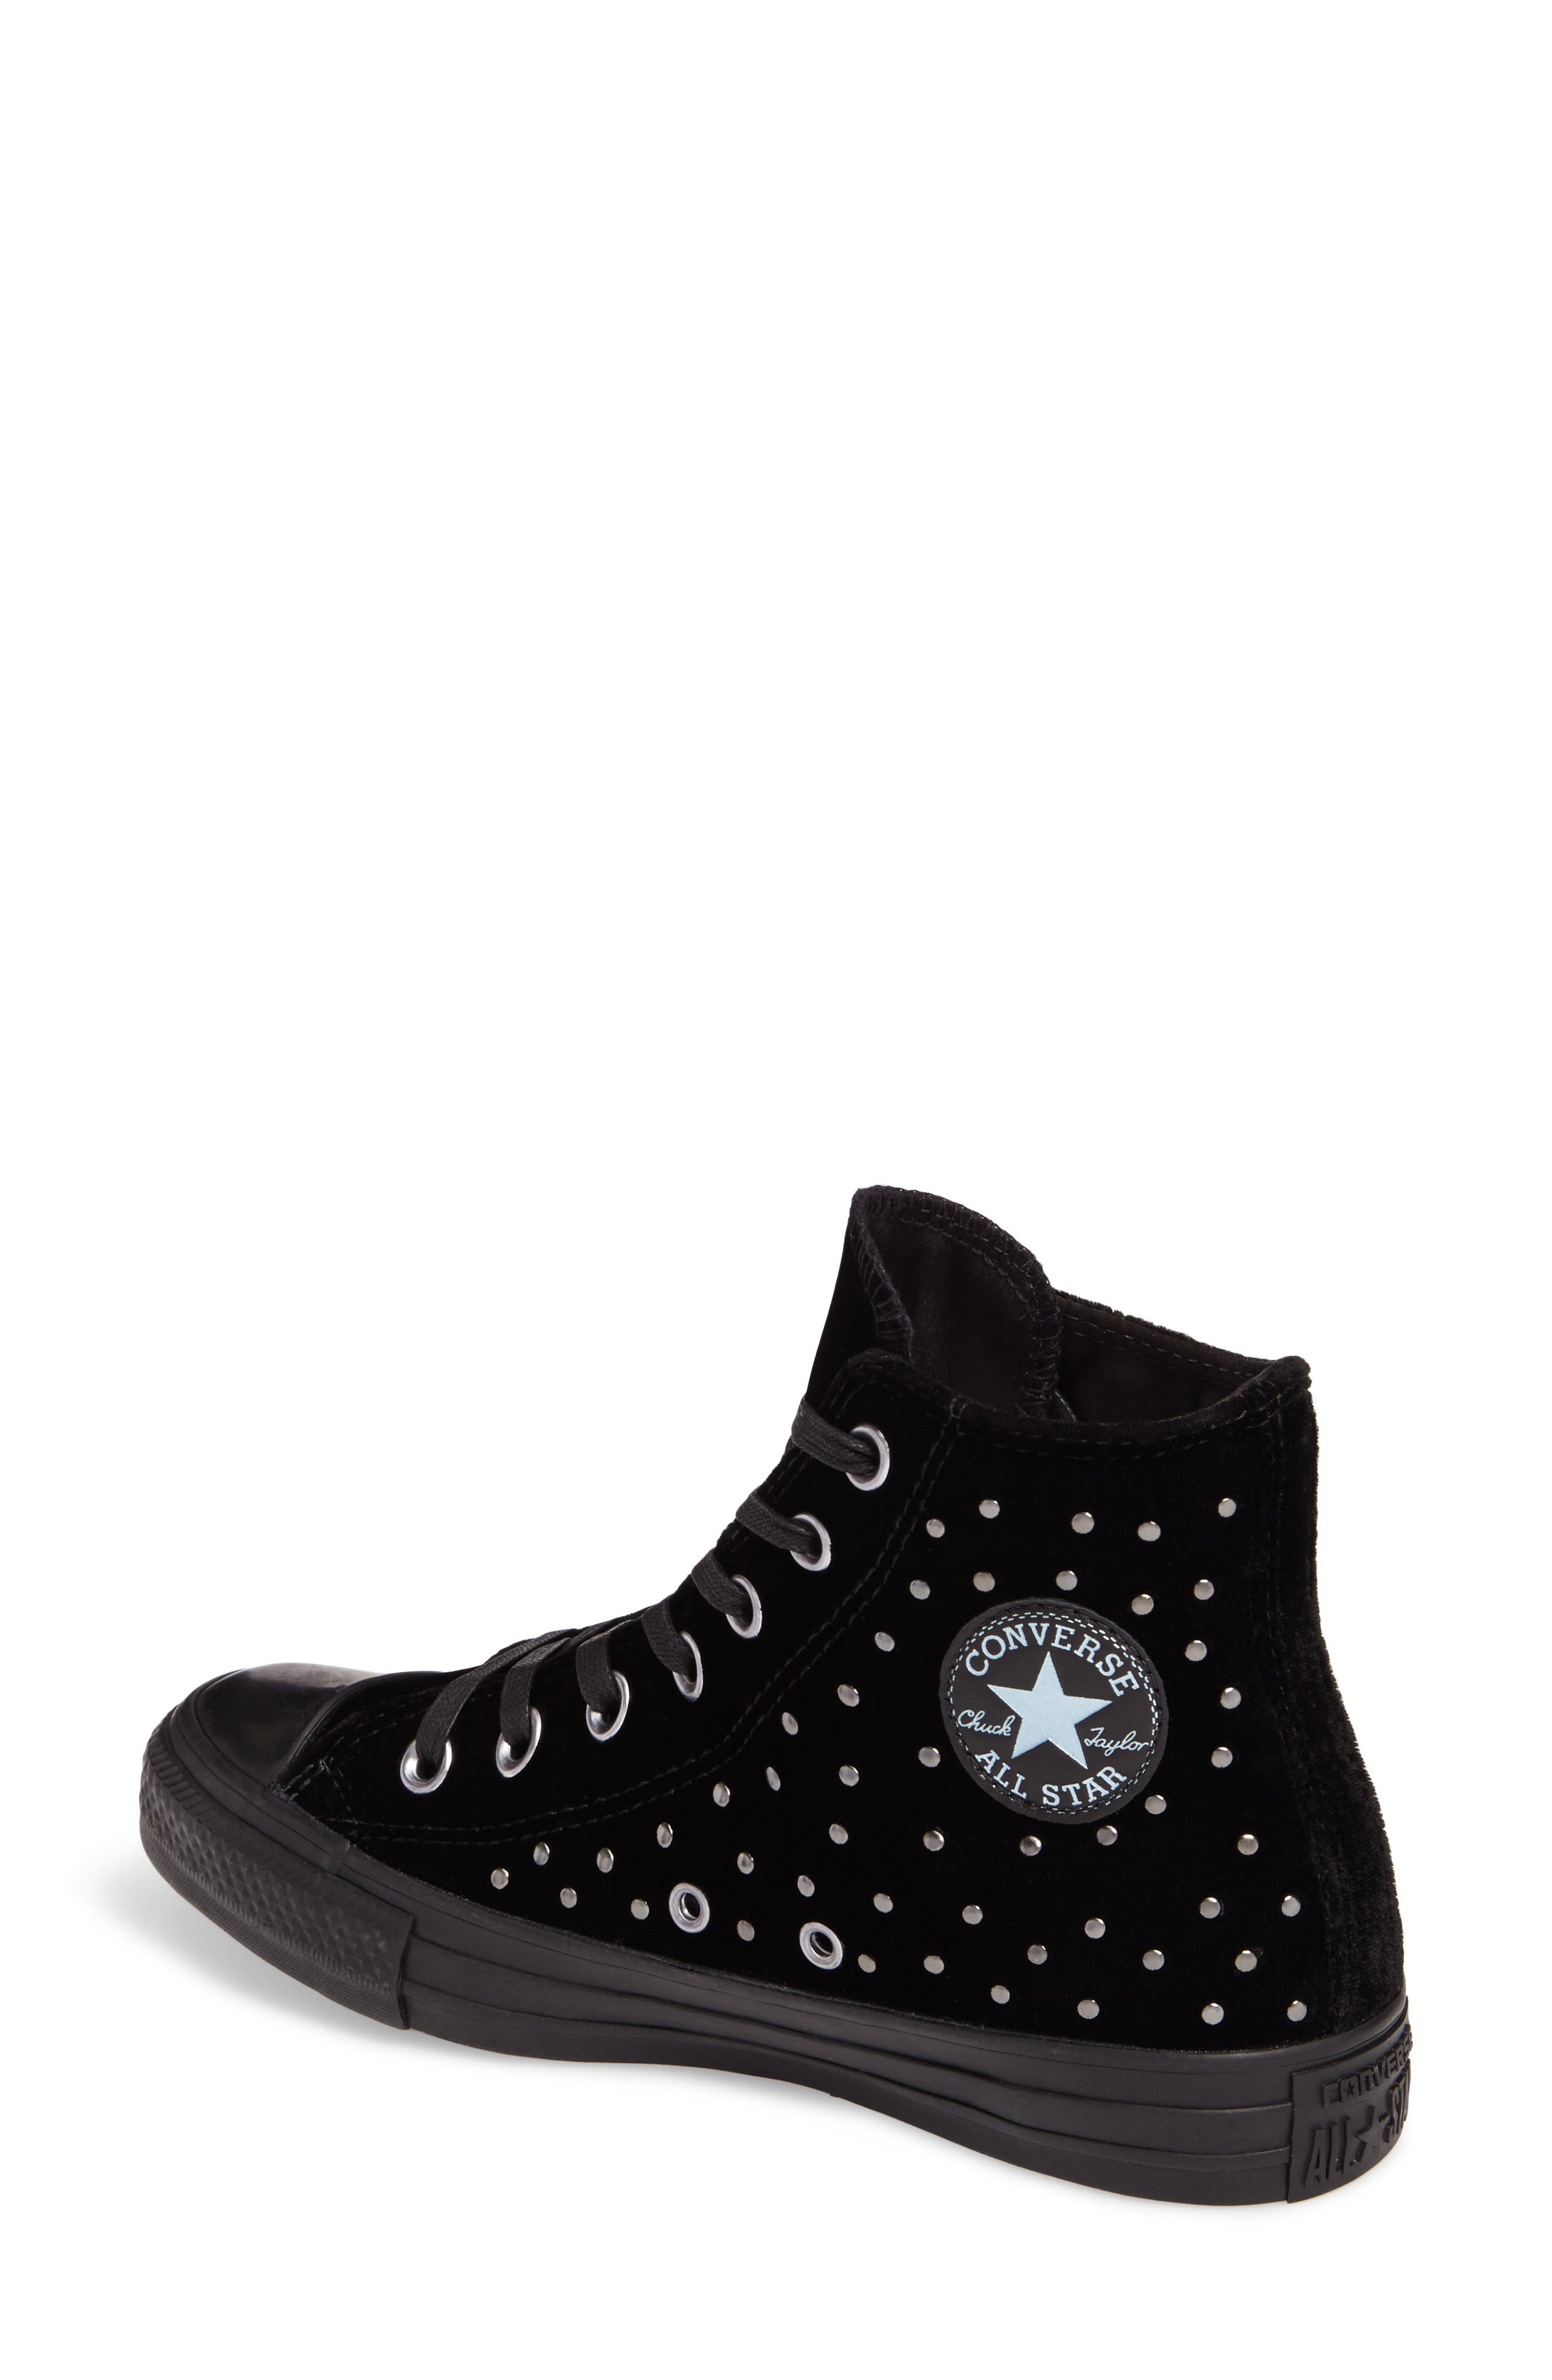 Alternate Image 2  - Converse Chuck Taylor® All Star® Studded High Top Sneakers (Women)